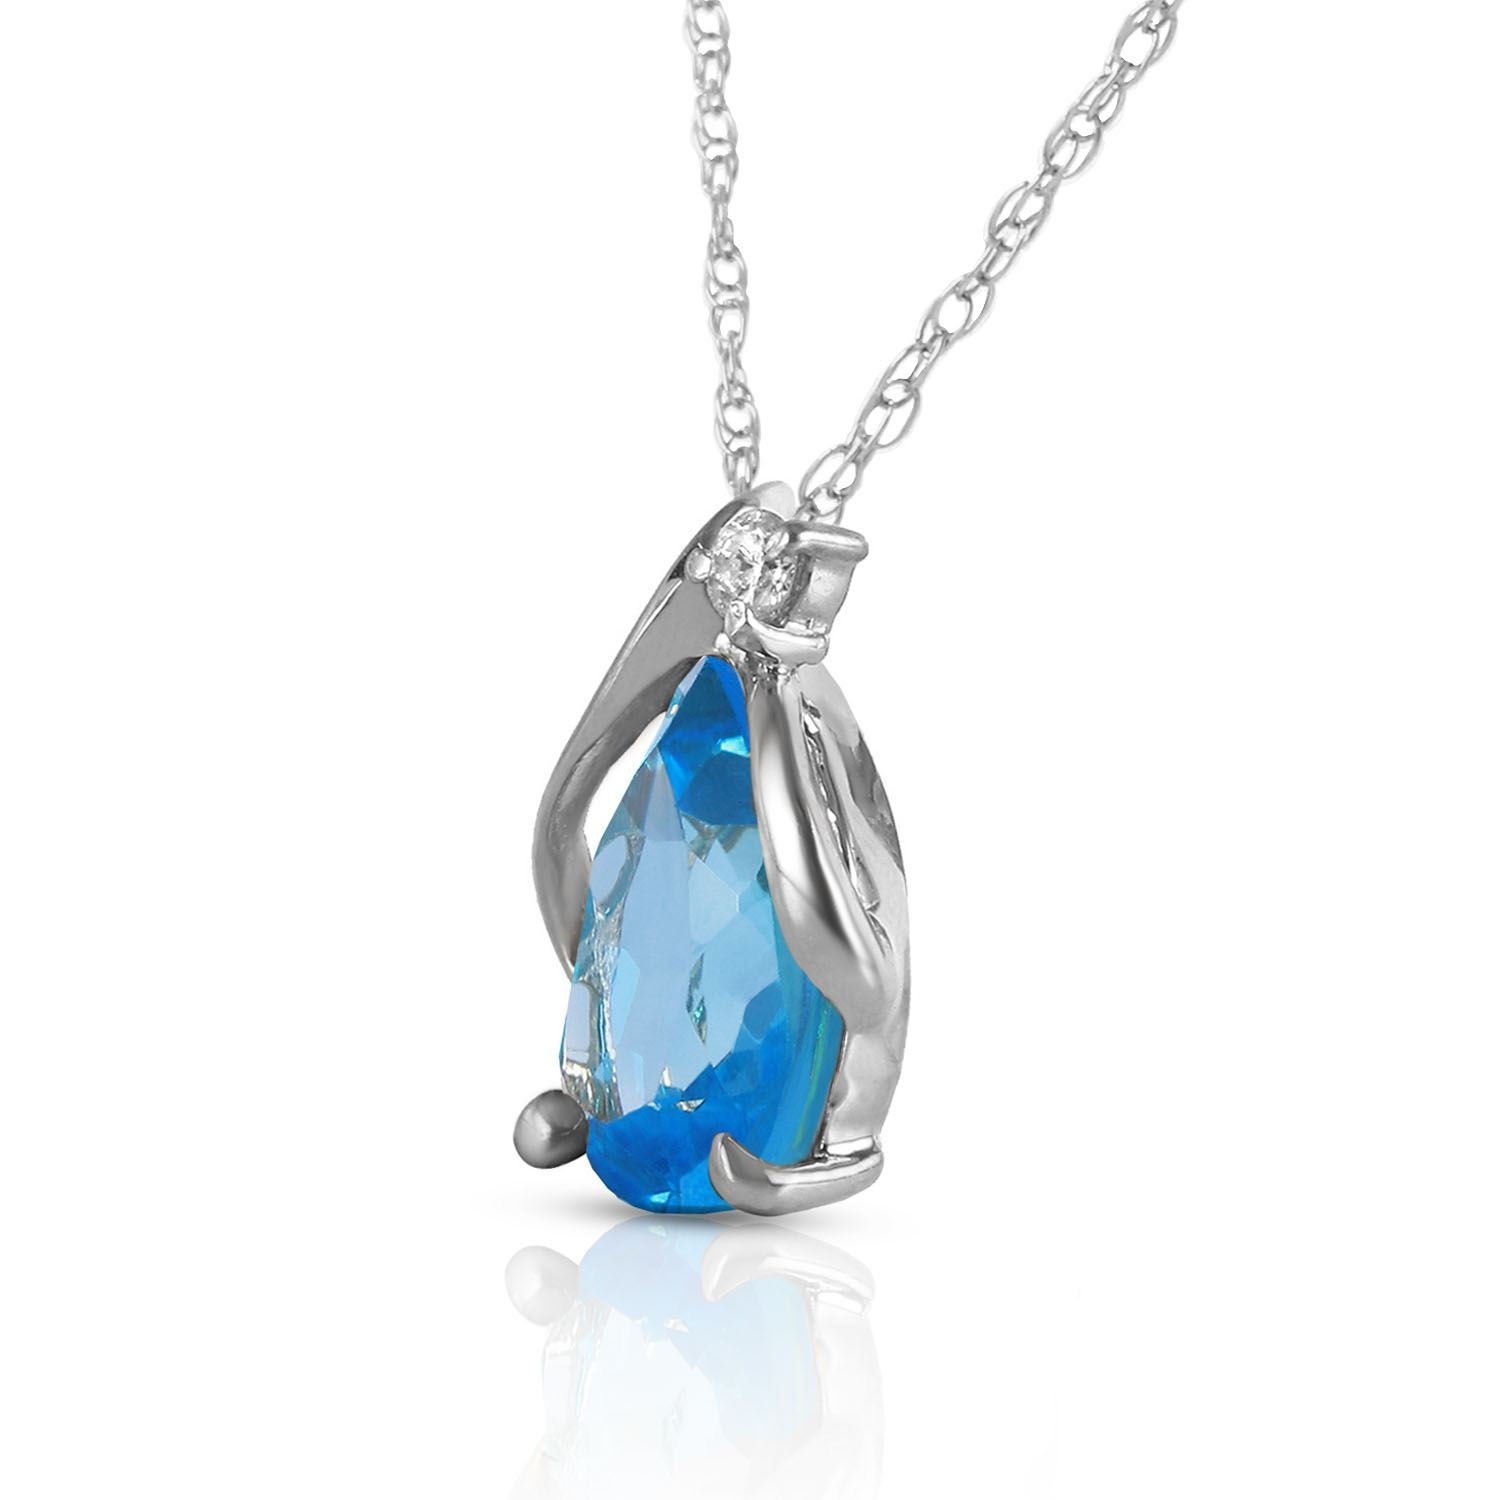 ALARRI 2.53 Carat 14K Solid White Gold Necklace Diamond Blue Topaz with 24 Inch Chain Length